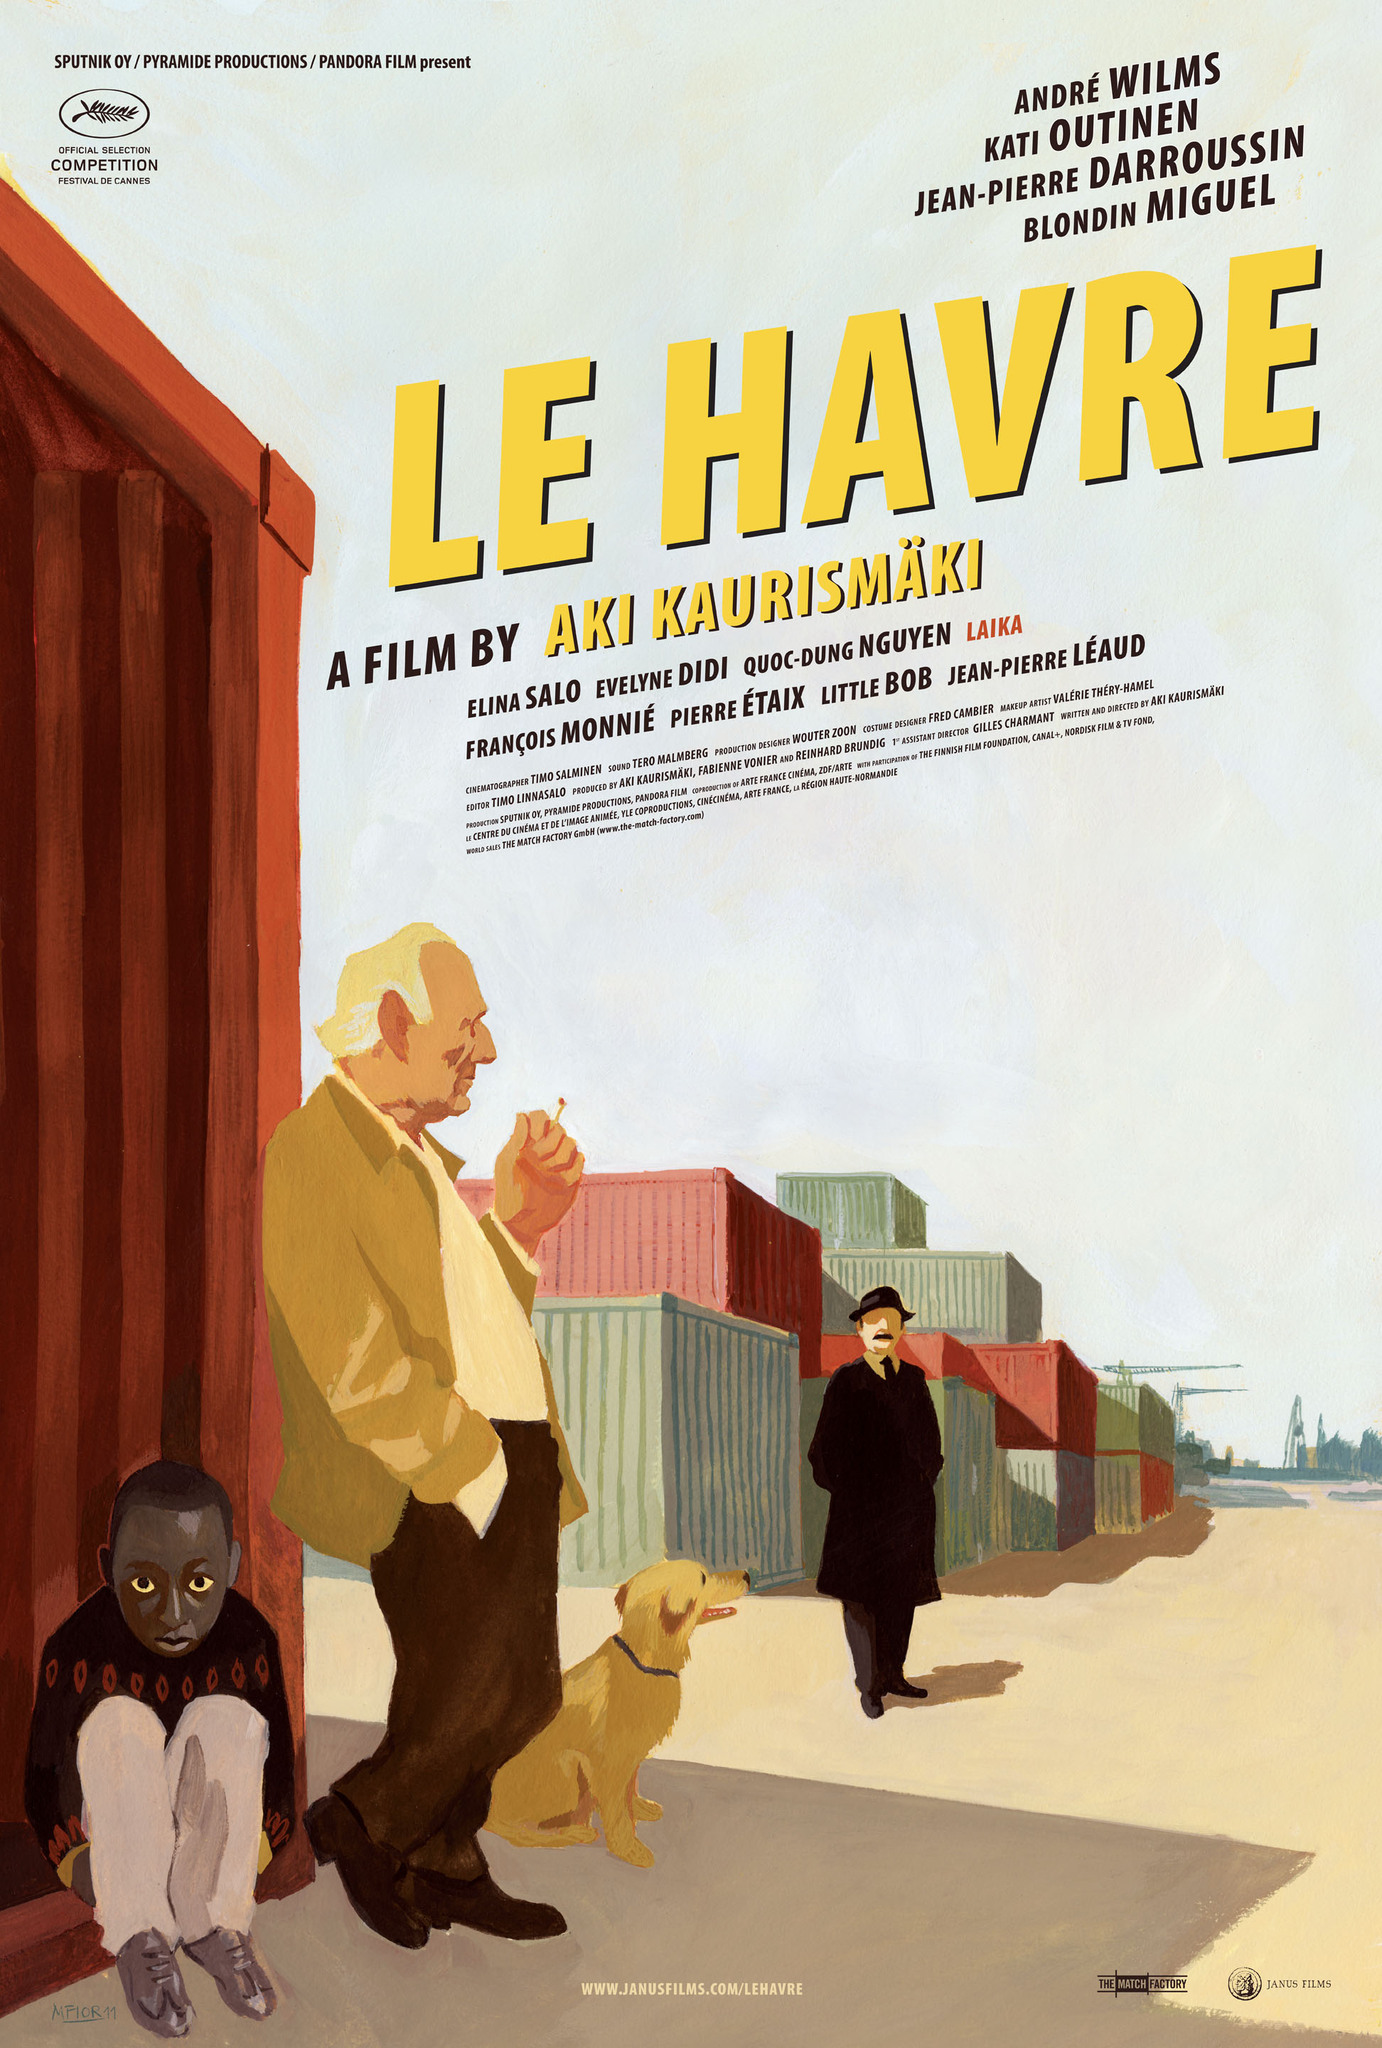 HAVRAS (2011) / LE HAVRE